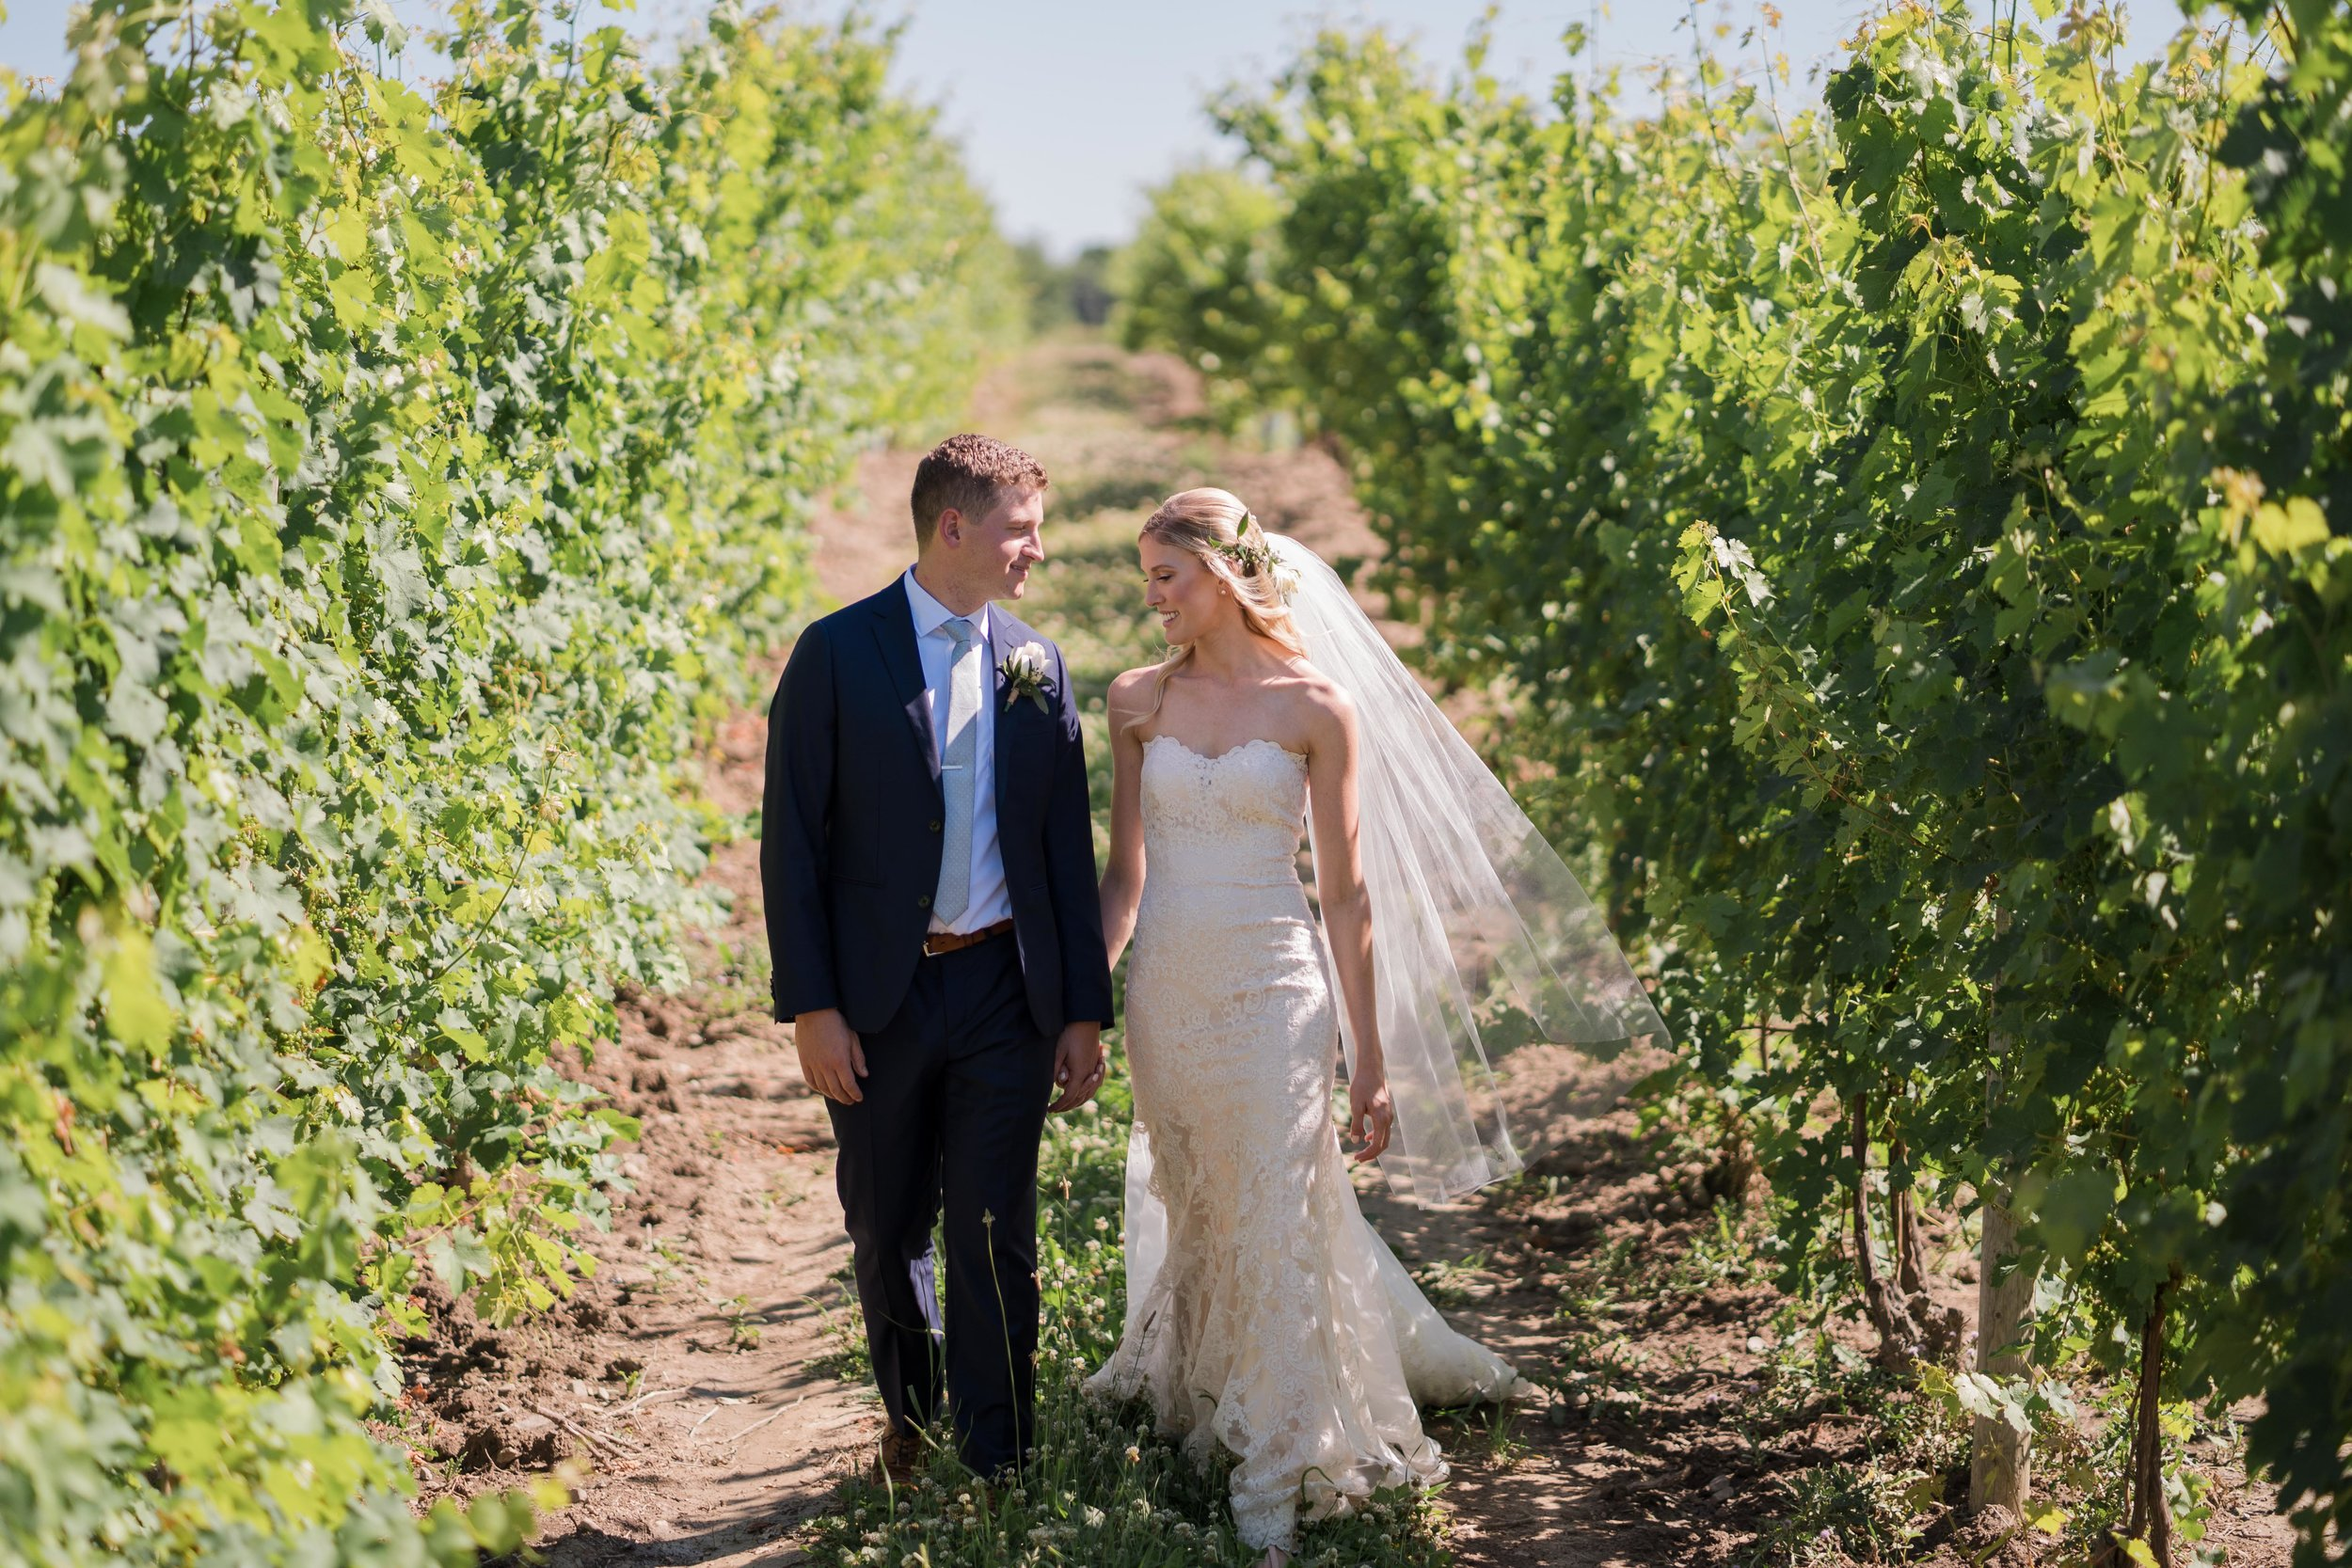 Wedding Photography at Wagner Vineyards Ginny Lee Cafe Finger Lakes by Stefan Ludwig Photography-45.jpg